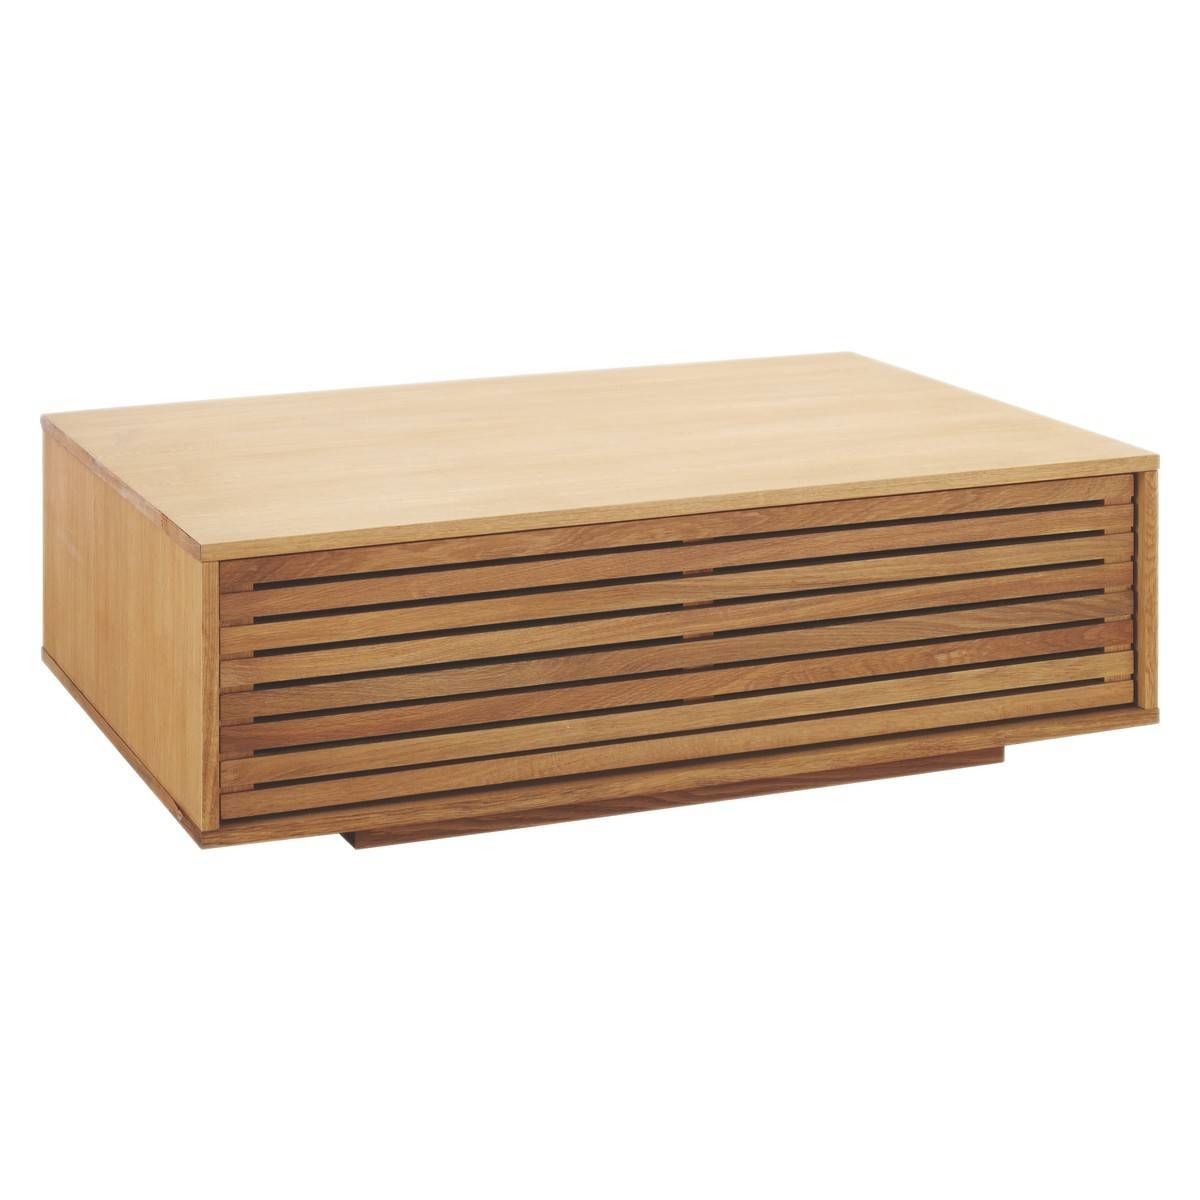 Max Oak Coffee Table | Buy Now At Habitat Uk Within Large Low Oak Coffee Tables (View 17 of 30)